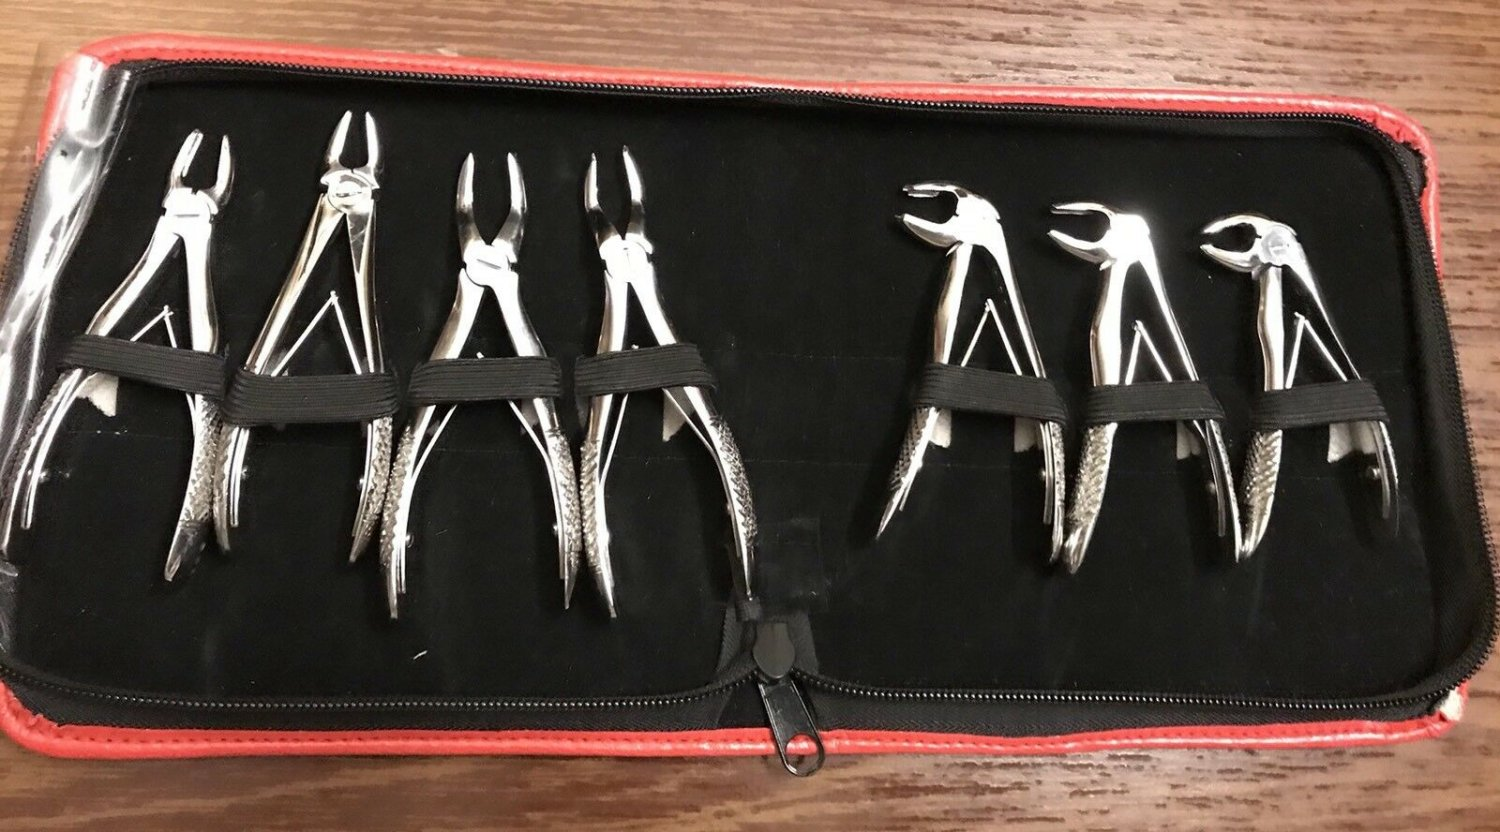 Pedo Children Dental Extracting Forceps 7 Pcs Kit with Pouch Dental Instruments